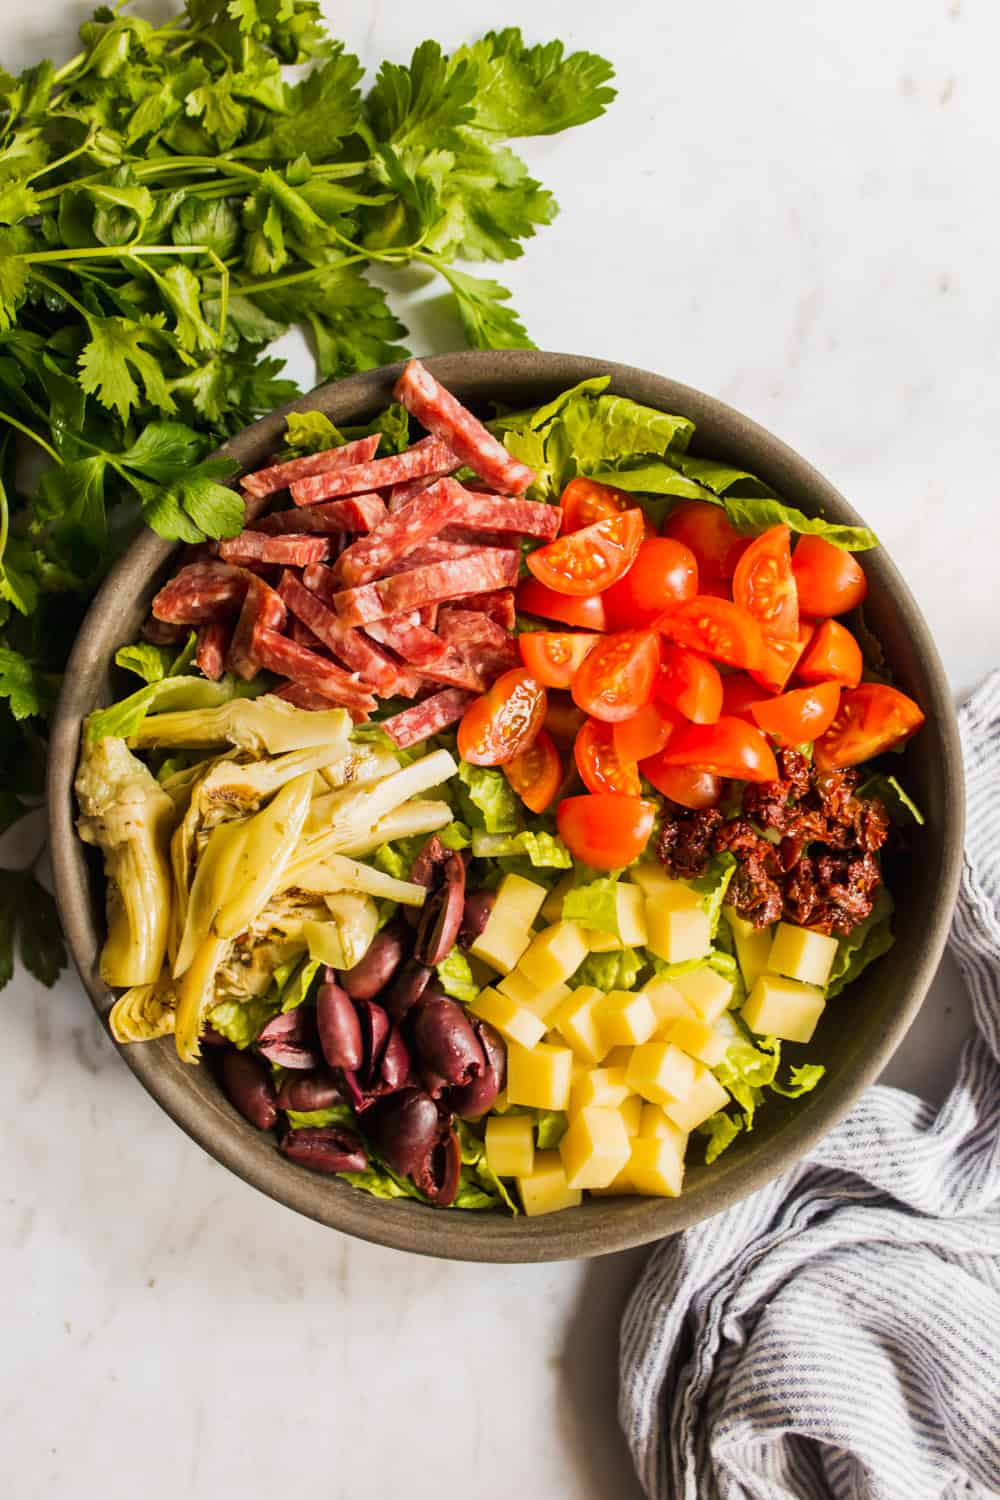 Chopped tomatoes, salami, olives, cheese, sundried tomatoes, and artichokes on top of a bowl of lettuce.